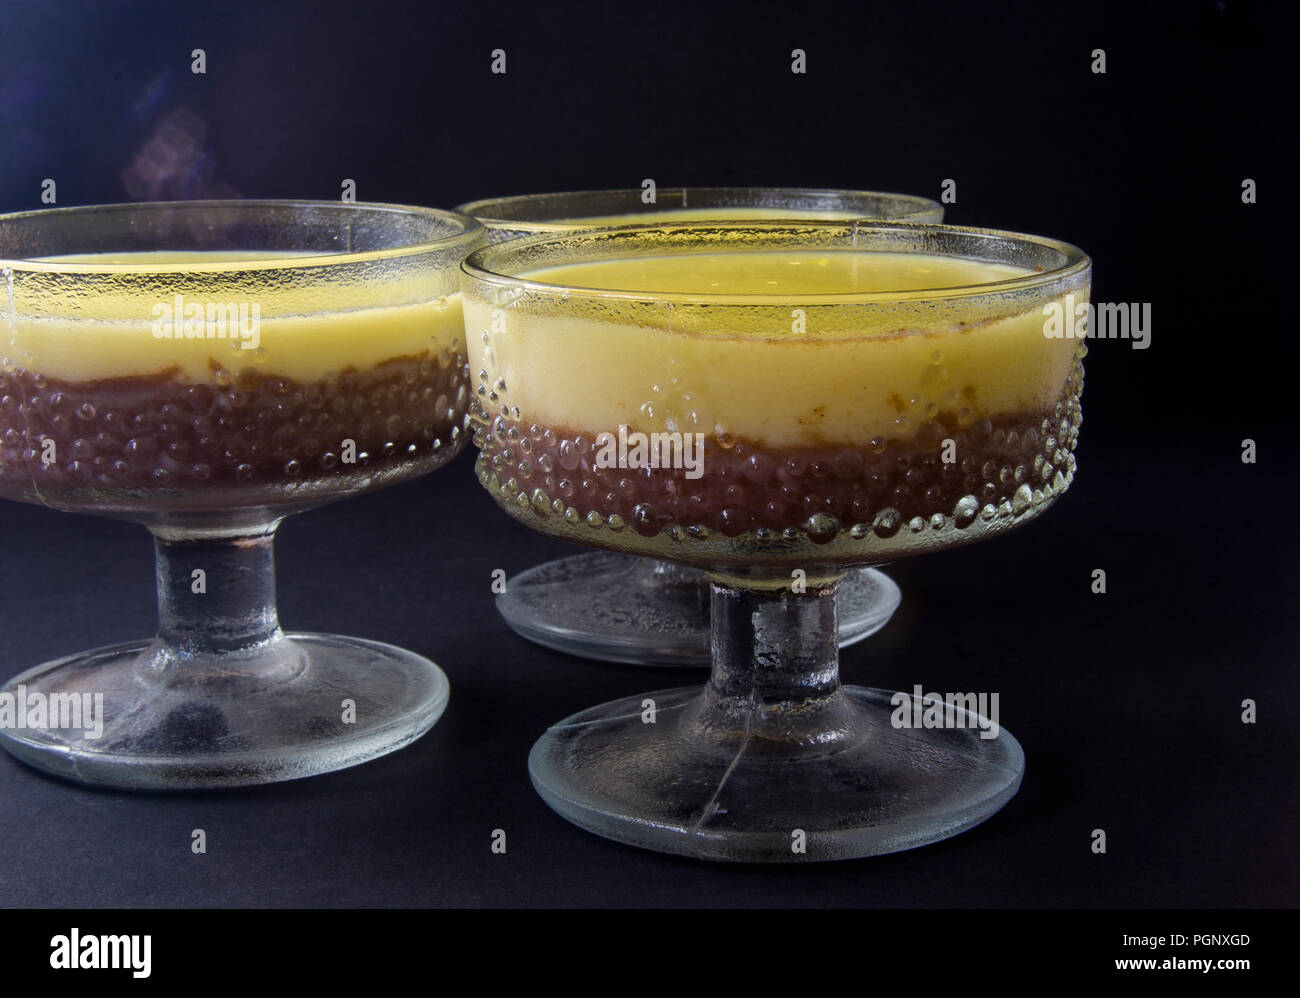 Mousse, souffle, pudding with vanilla and chocolate in glass black, dark background. Stock Photo